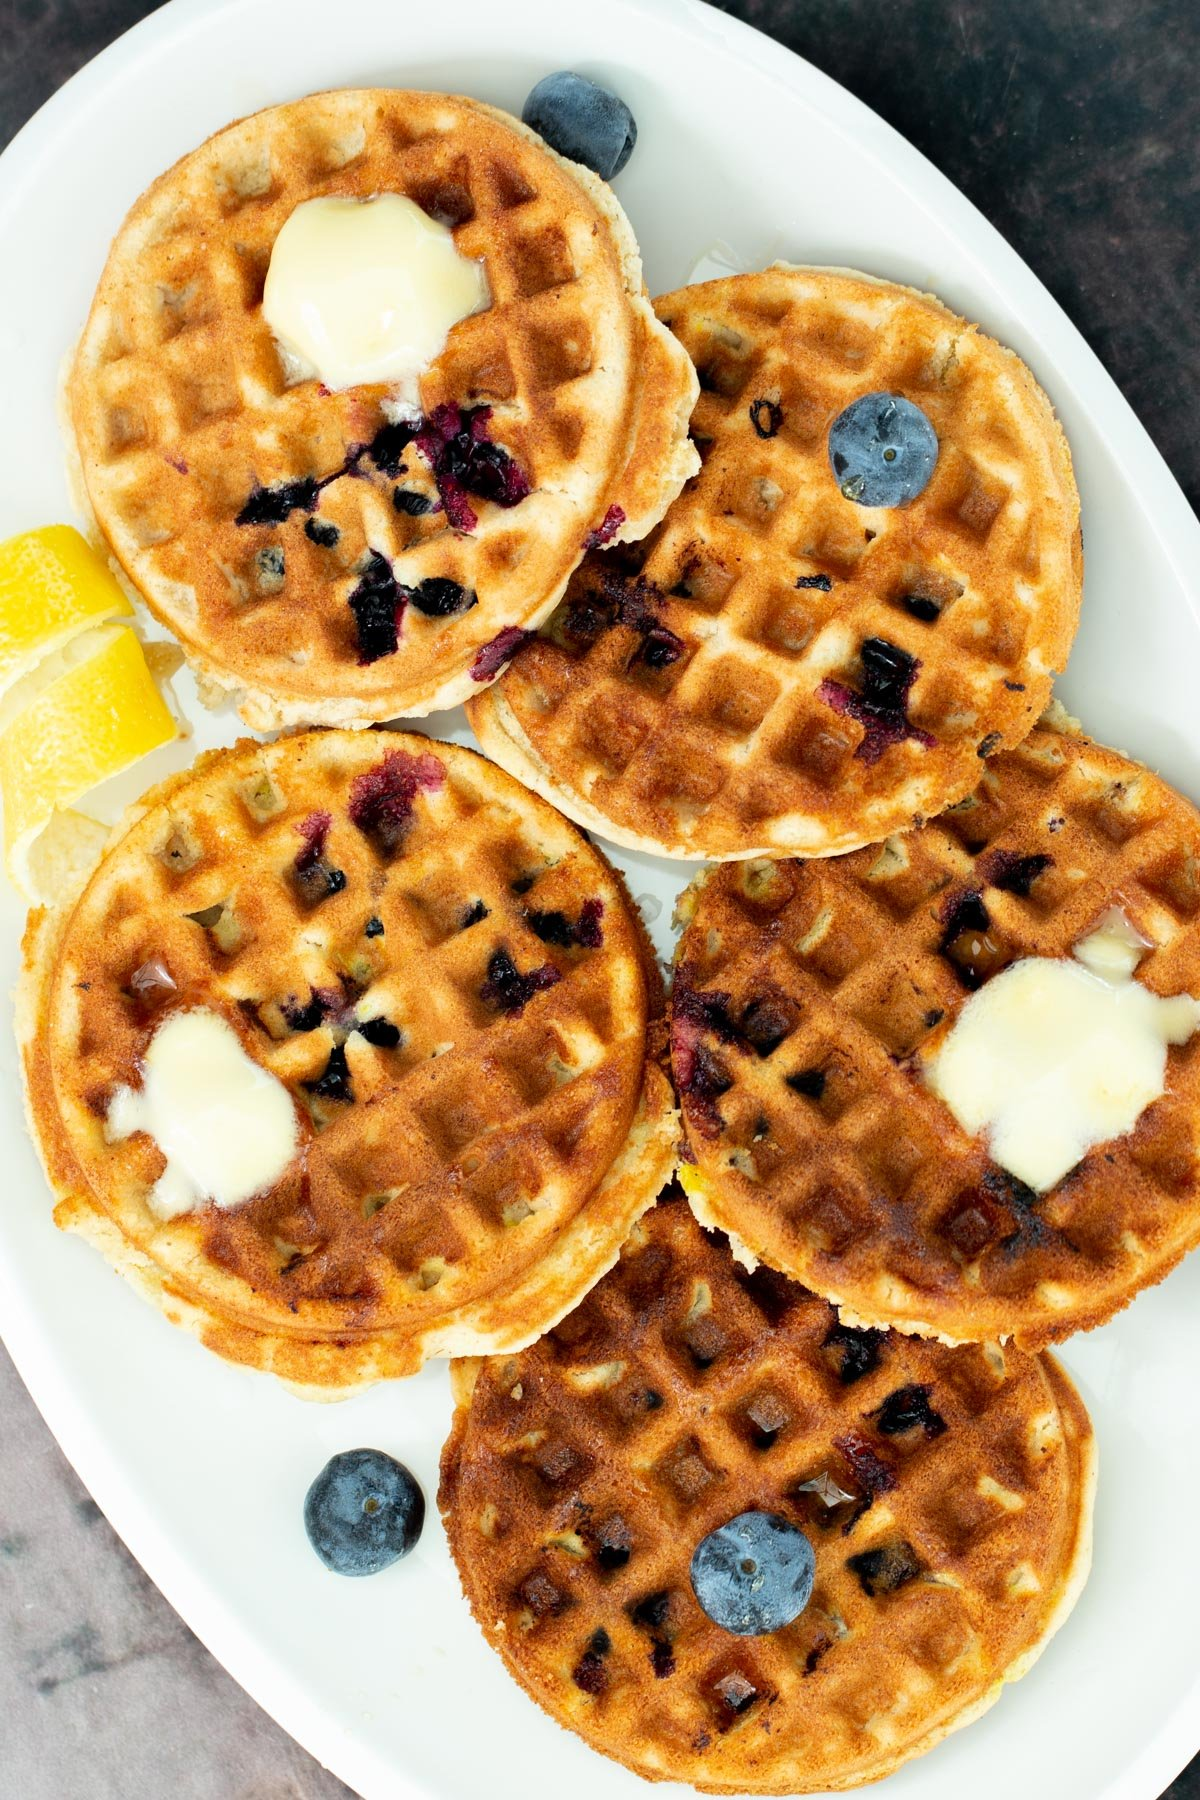 a plate of vegan glutenfree lemon blueberry waffles topped with dollops of butter and fresh blueberries